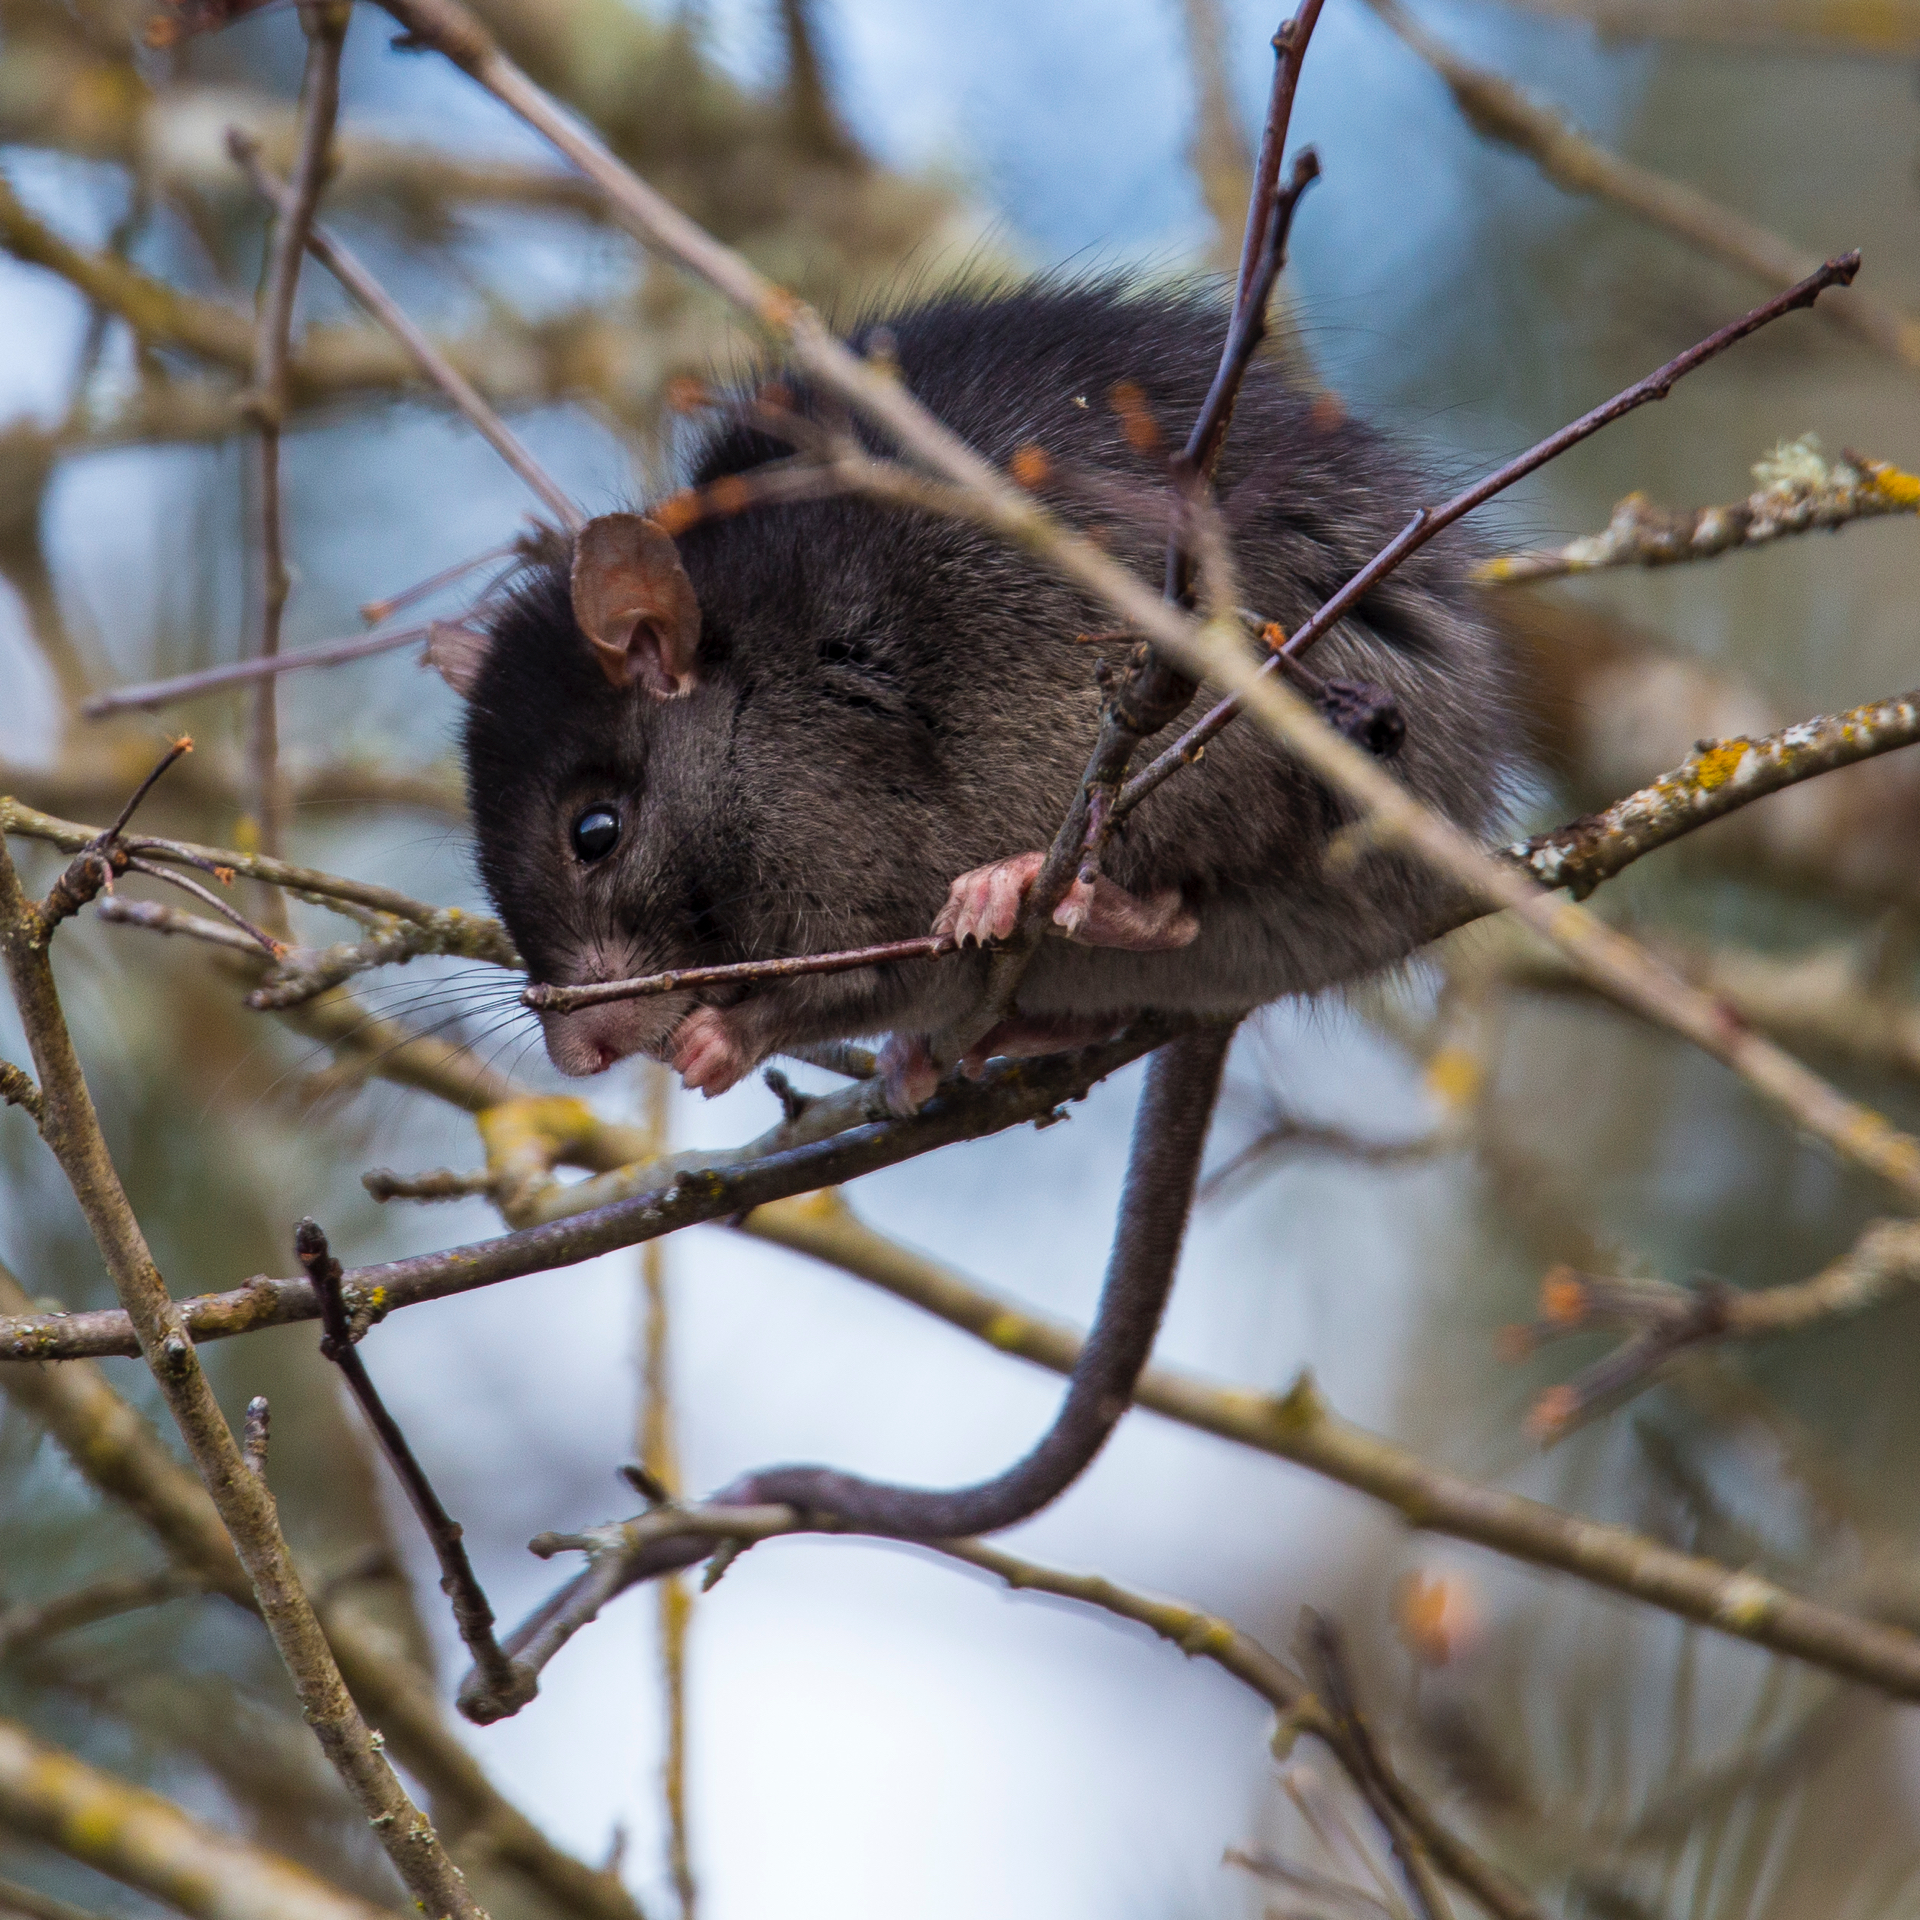 In a tree near the entrance, this rat was up in the branches eating berries.